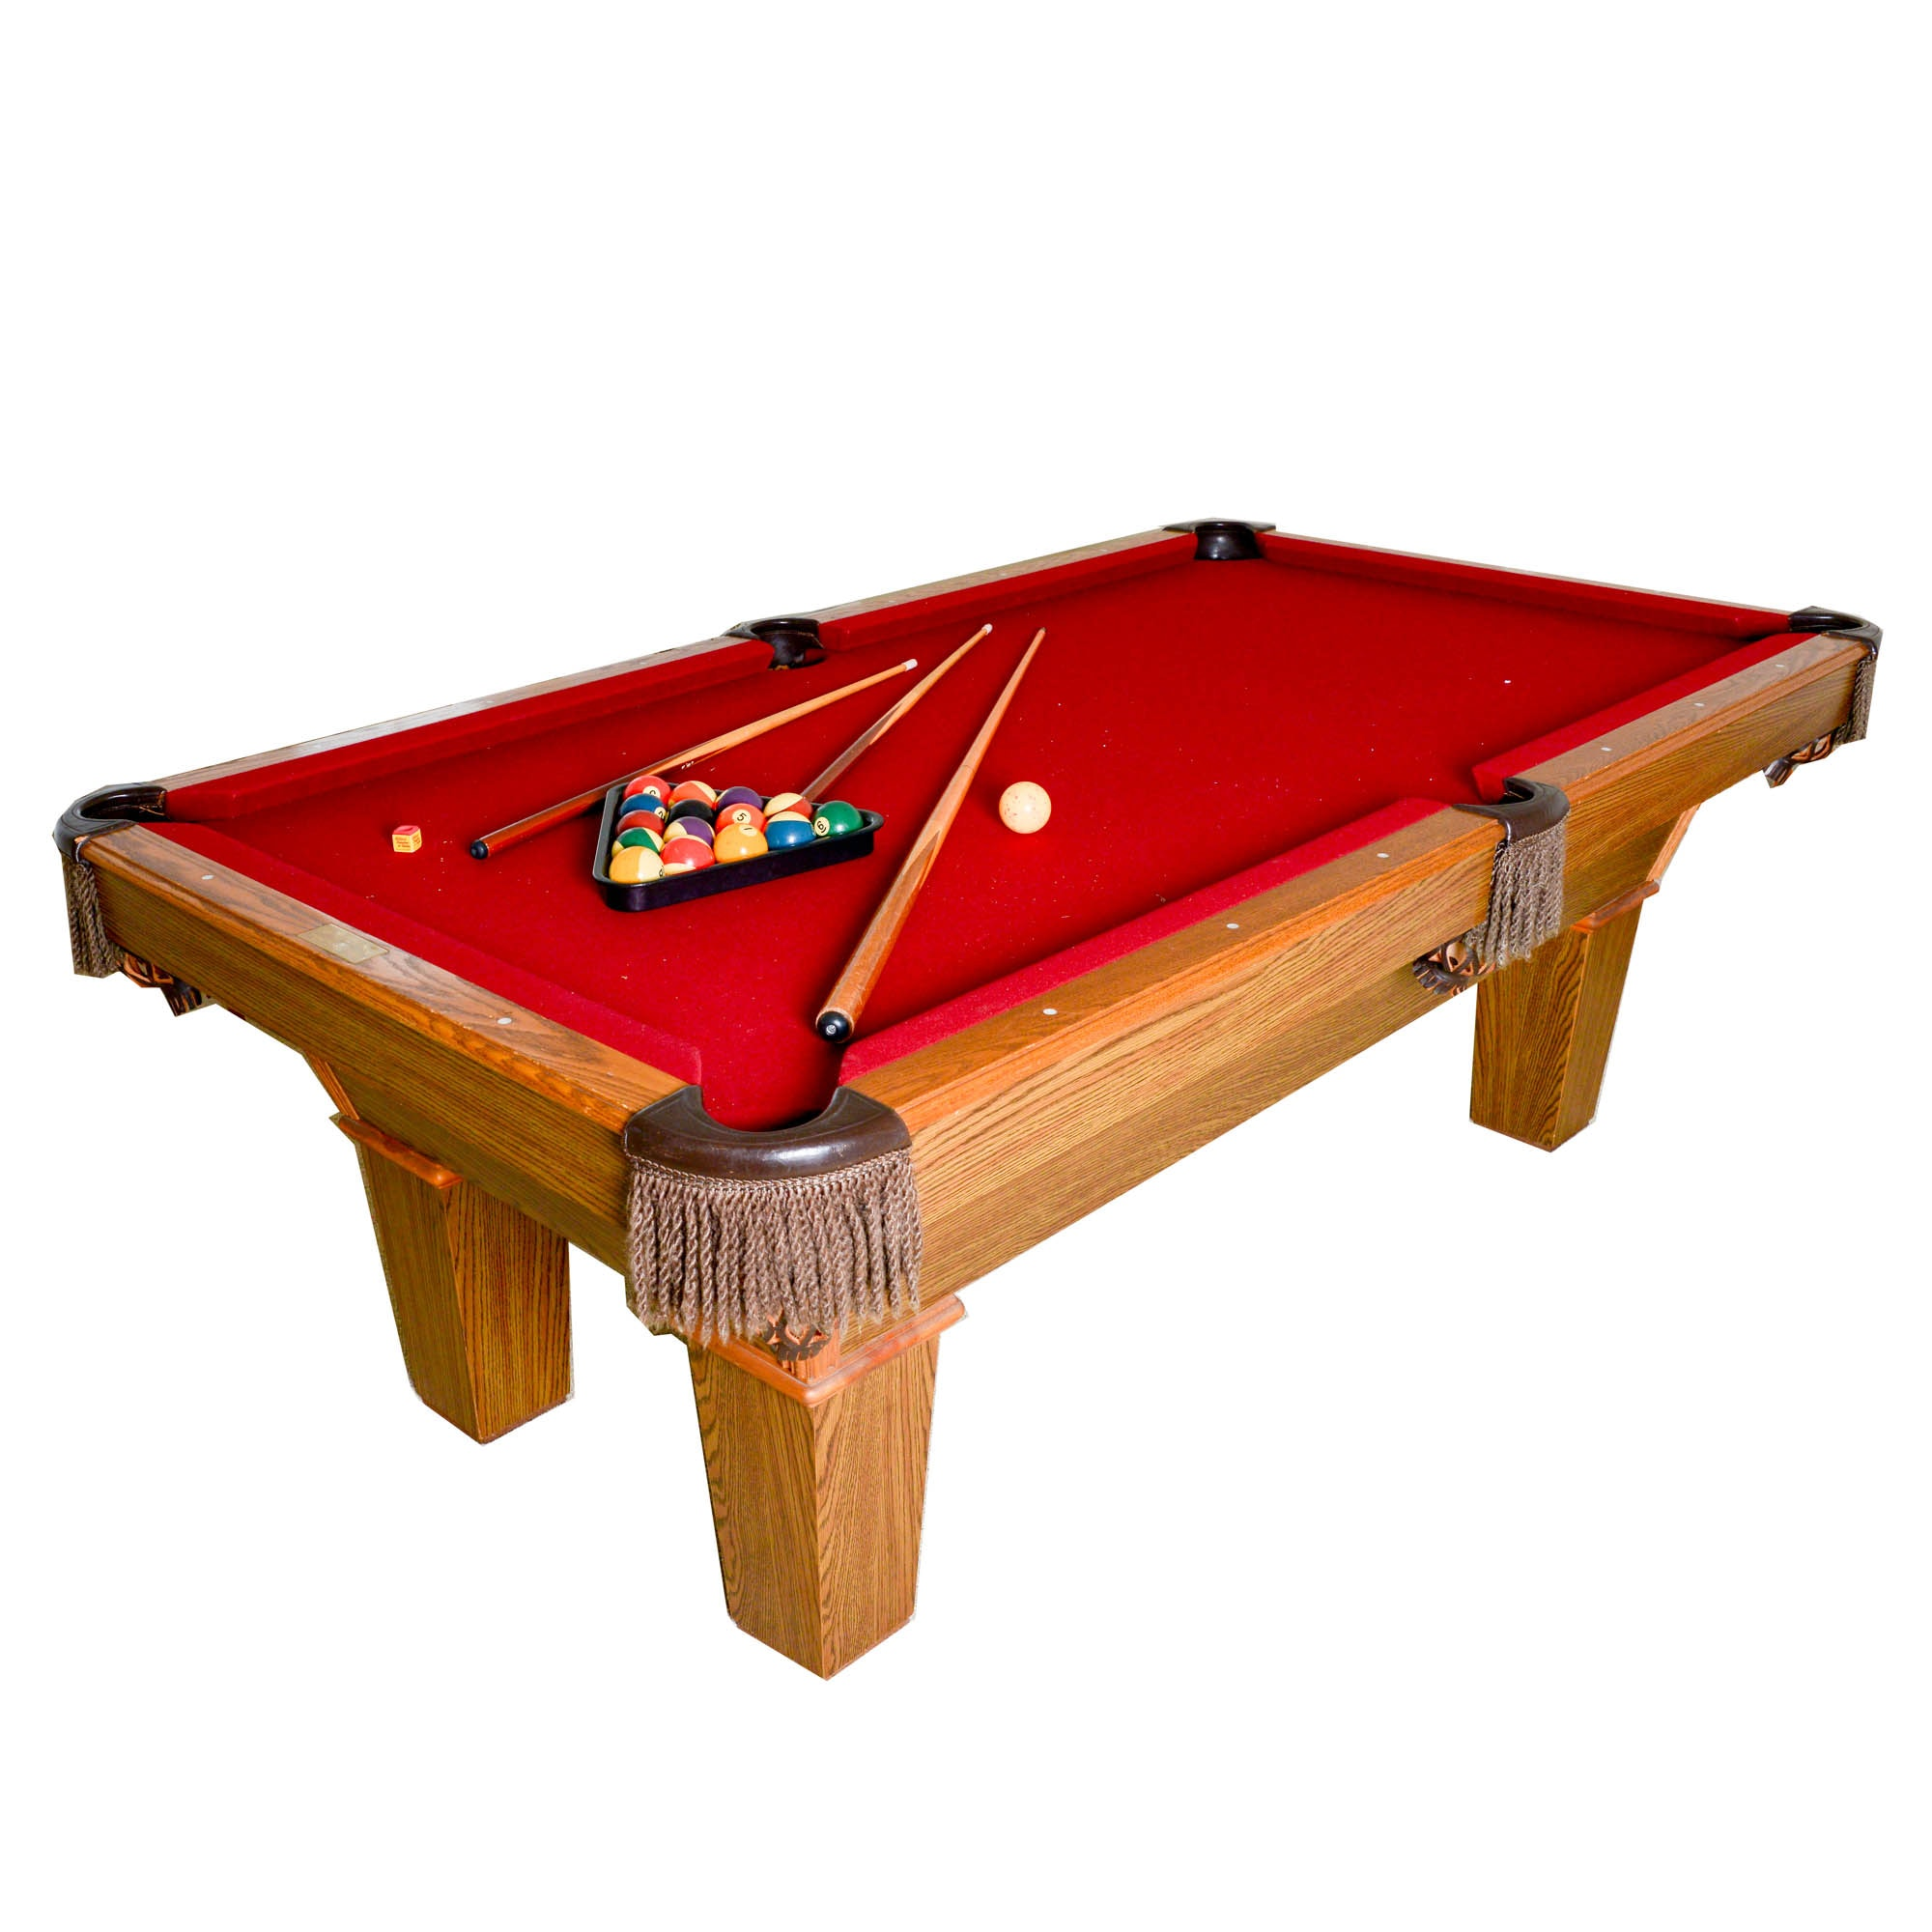 Billiard supplies pool cues pool tables pool sticks html autos weblog - Billiard table accessories ...